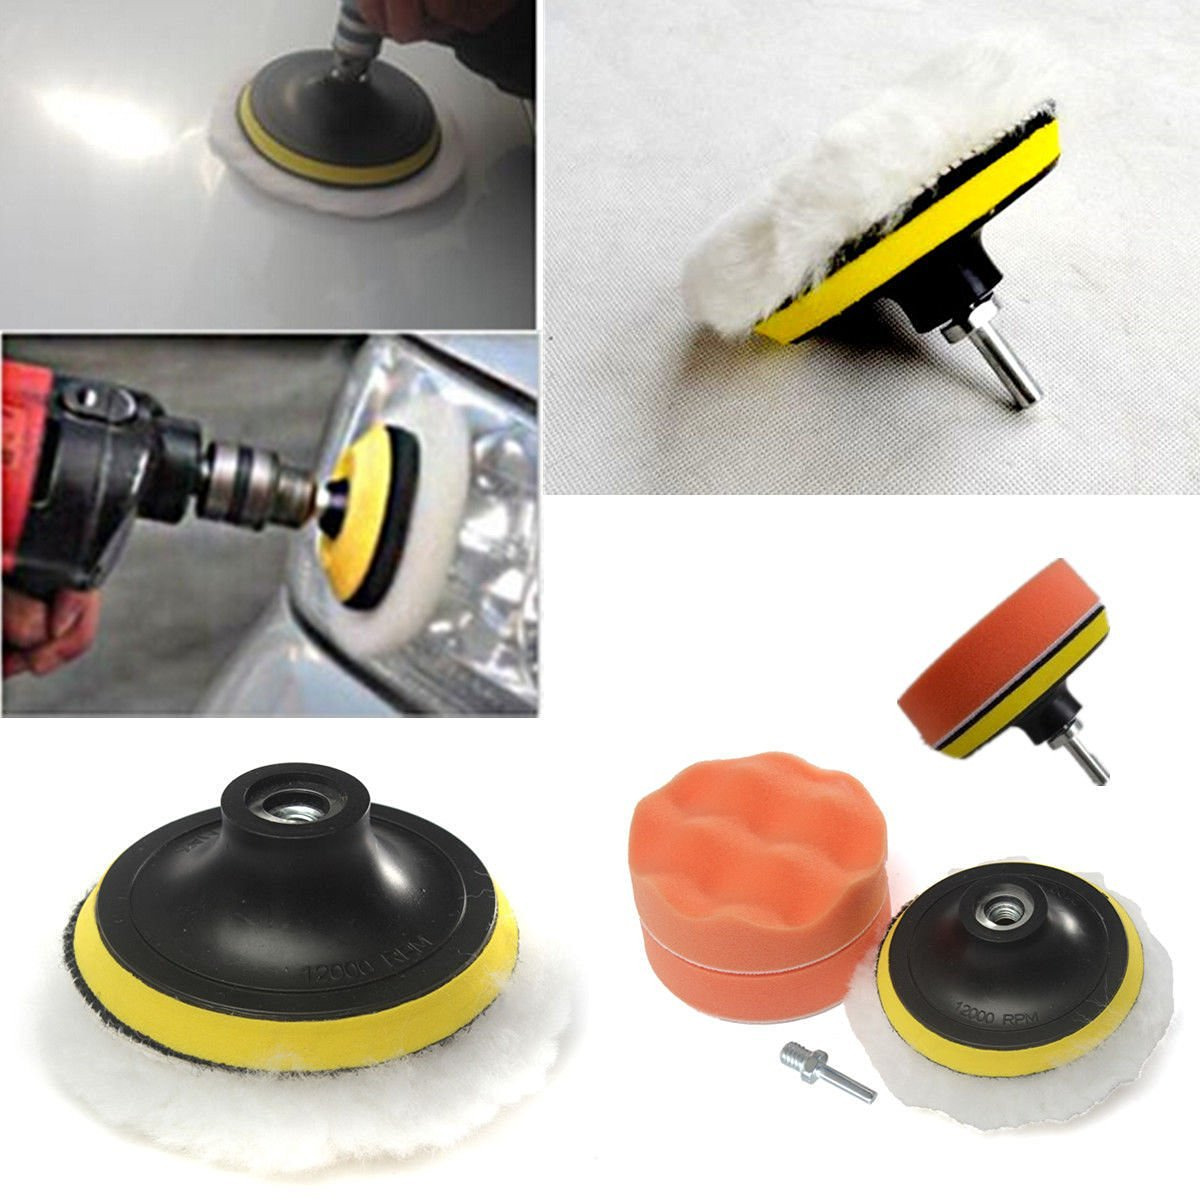 Abrasive Tools Learned 3pcs Car Polishing Sponge Pads Waxing Buffing Pad Foam Kit Set For Car Polisher Buffer Sander Polishing Waxing Sealing Glaze Carefully Selected Materials